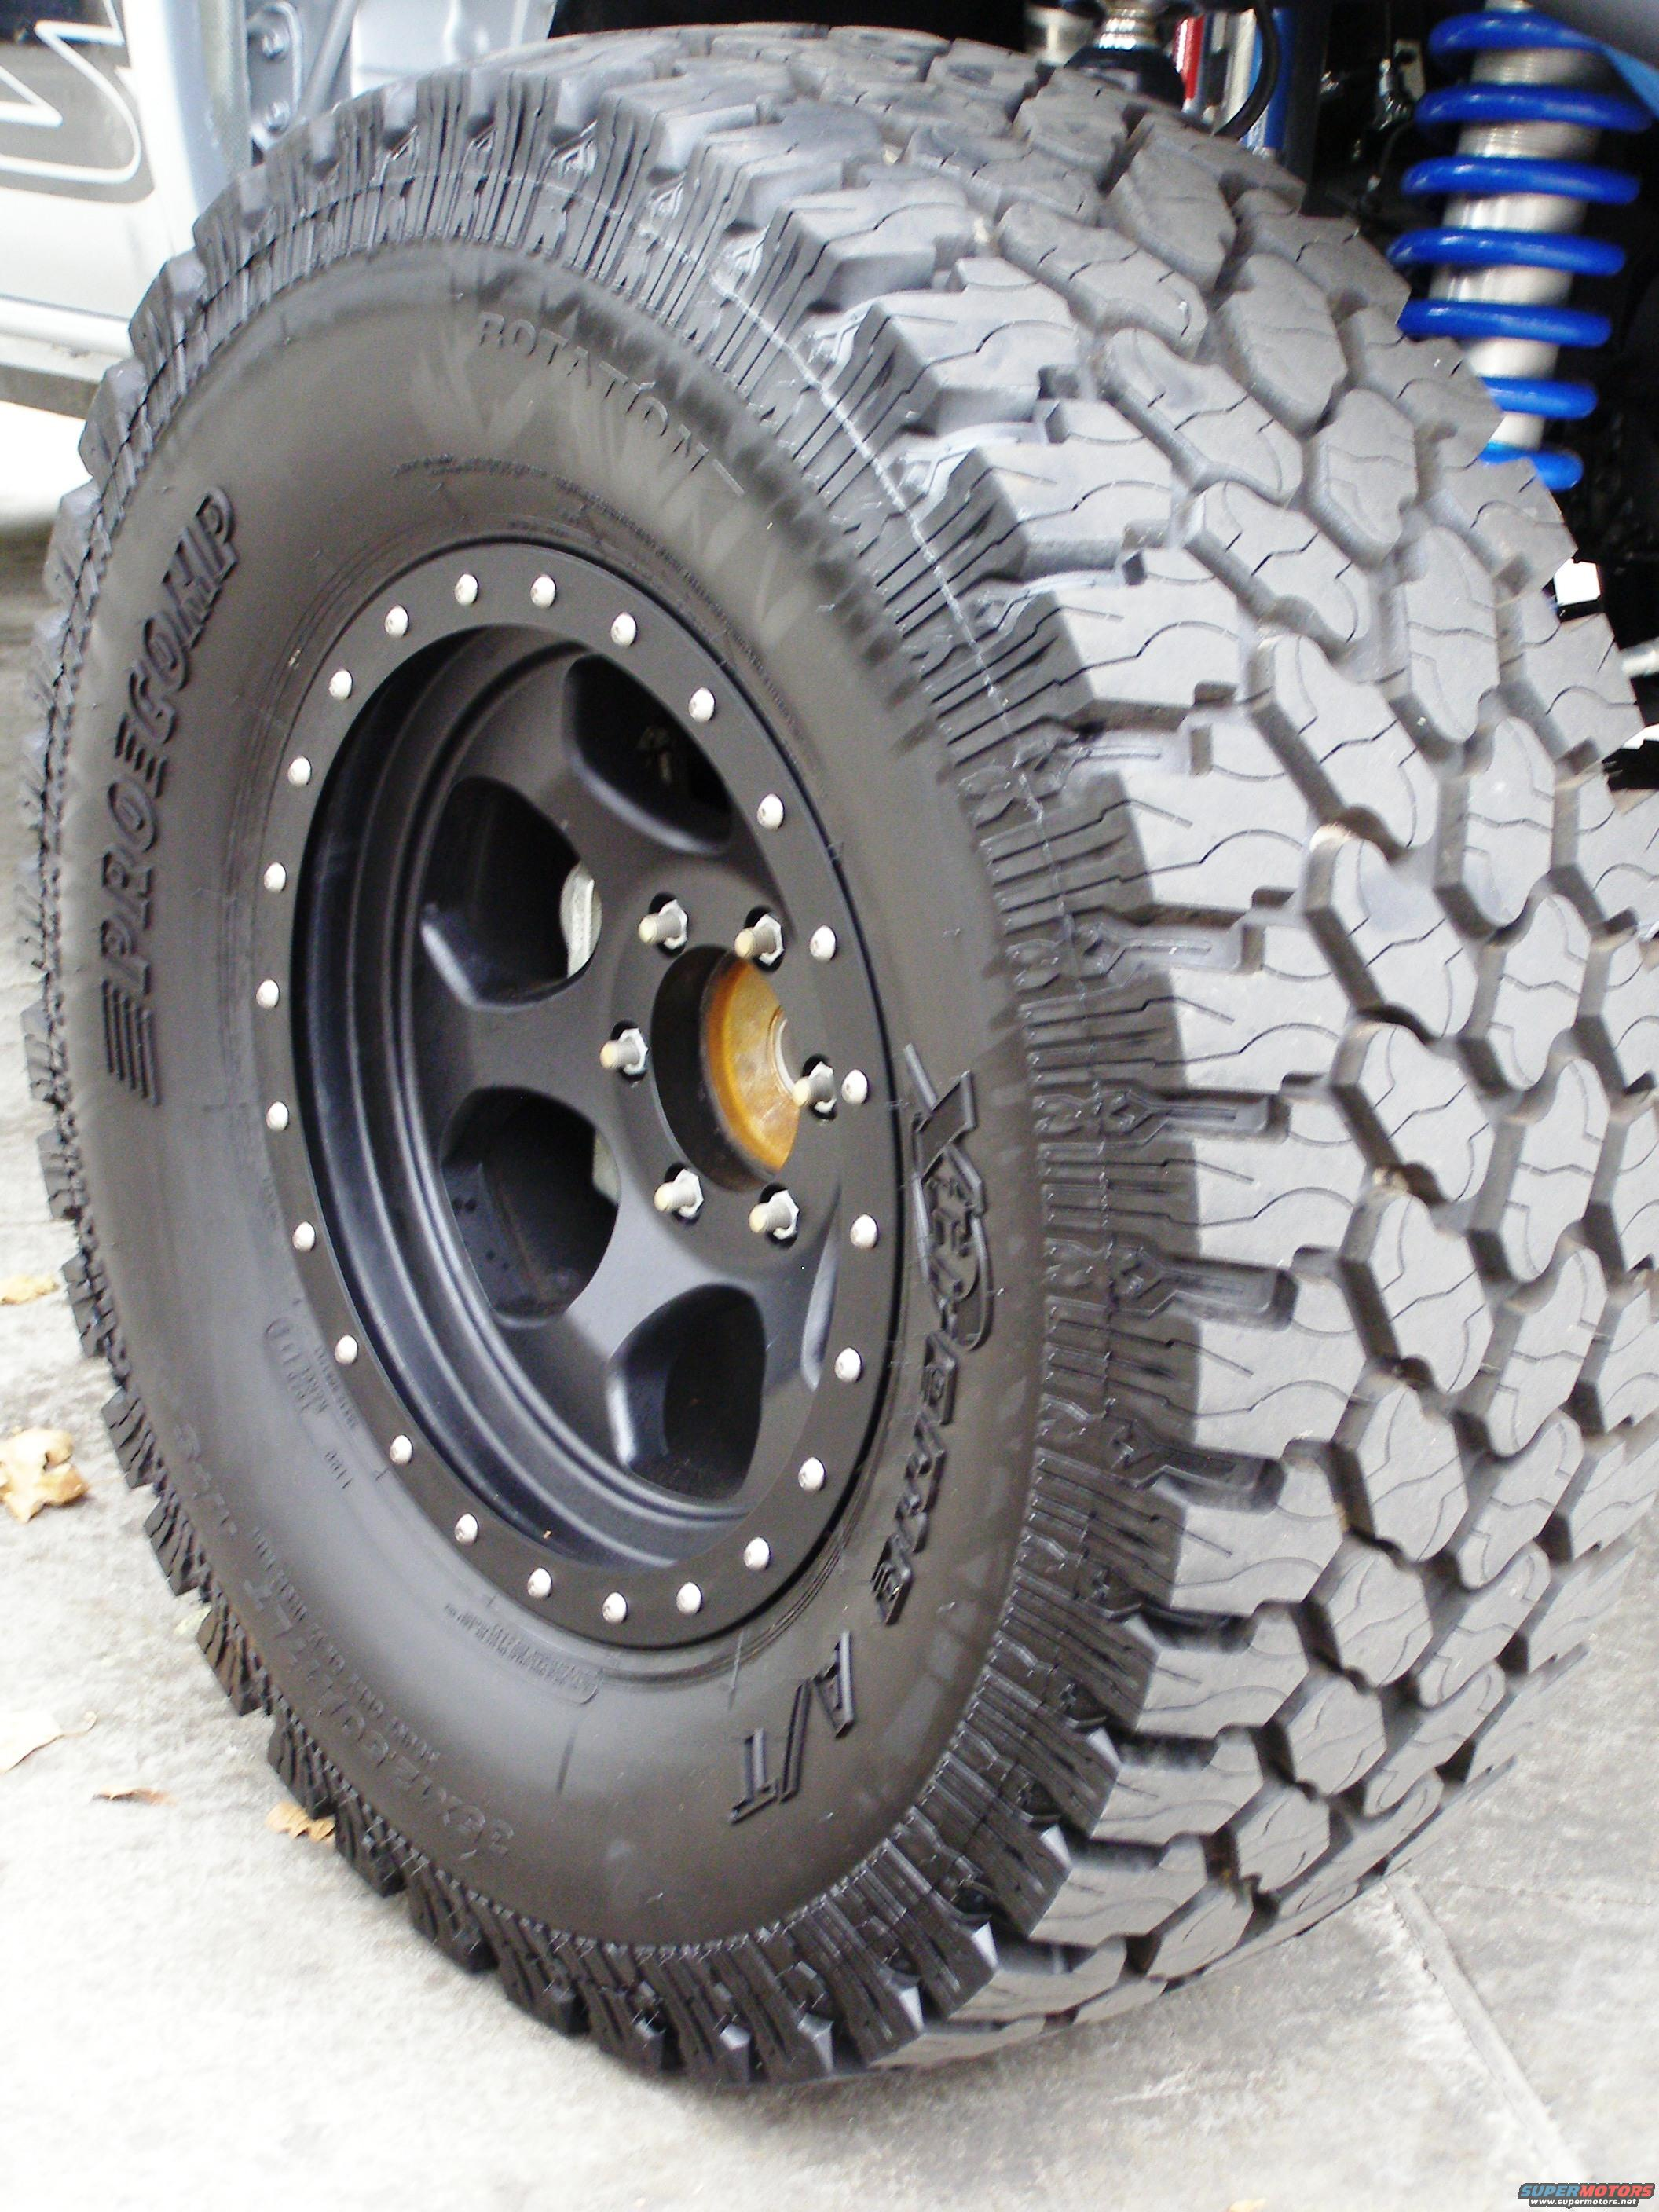 Tire Procomp Xtreme At On Robby Gordon Beadlock Ii on Ford Bronco